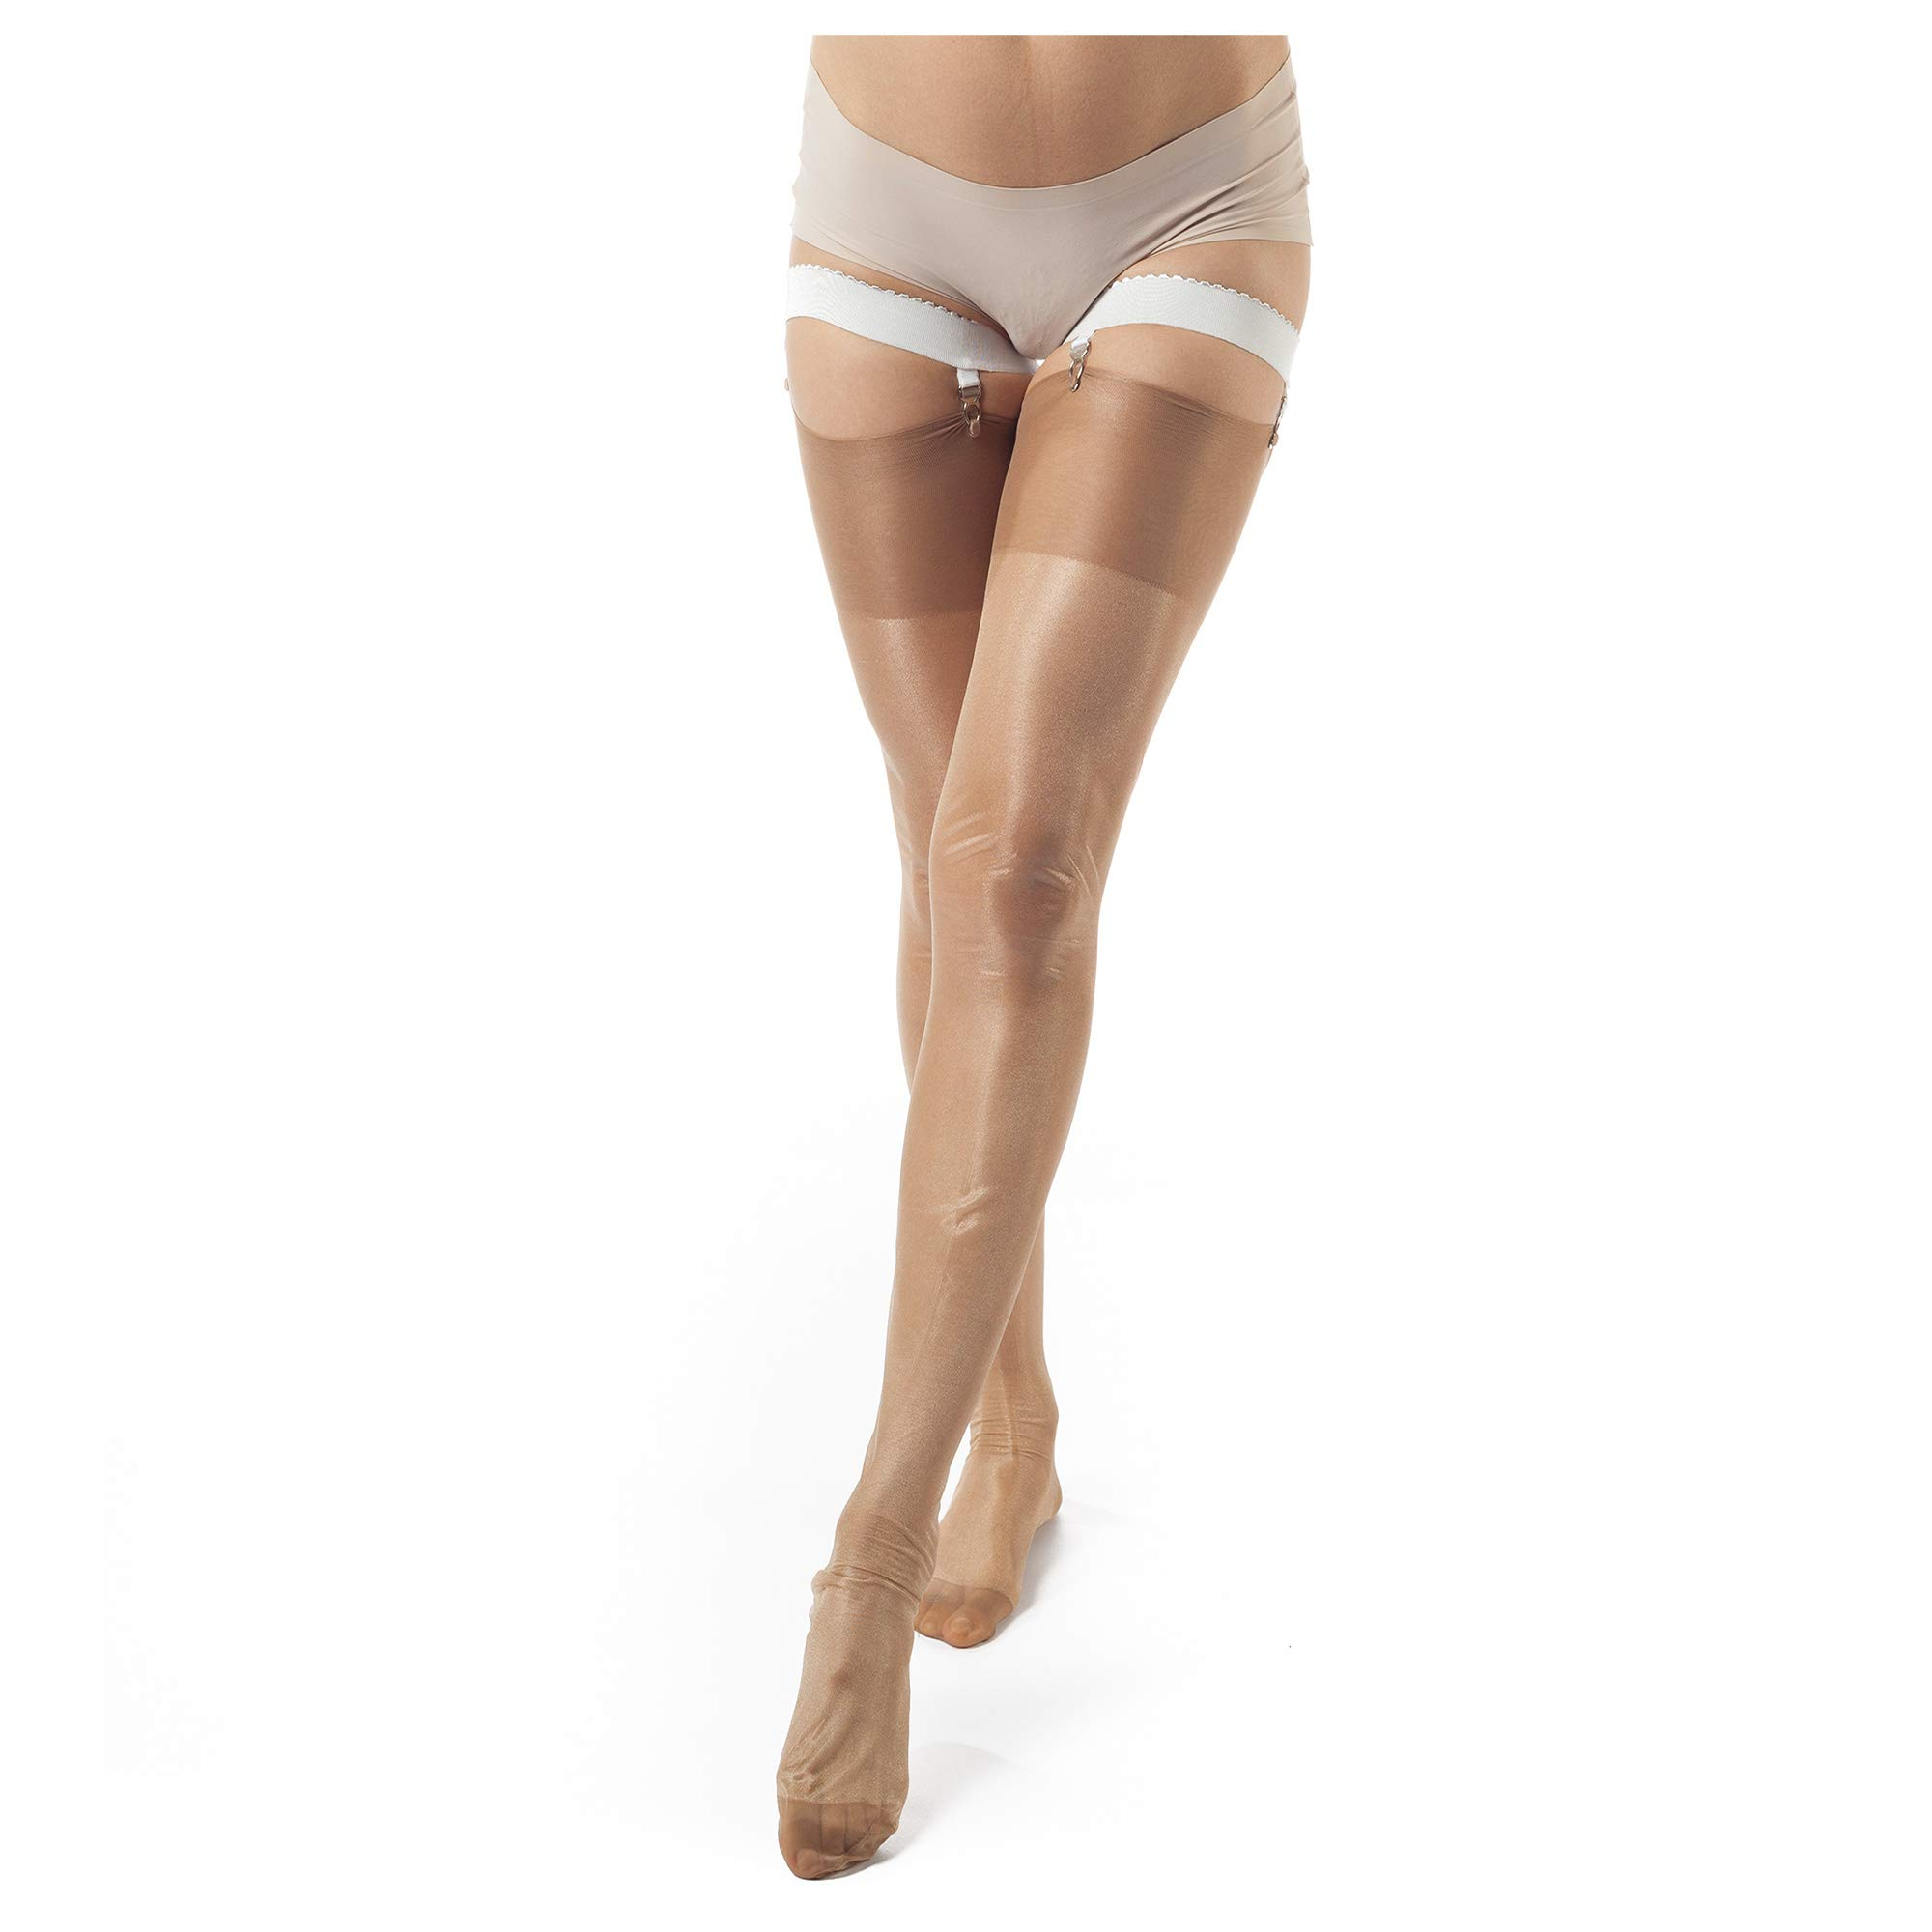 Women Non-Stretch Stockings Nylons Hosiery